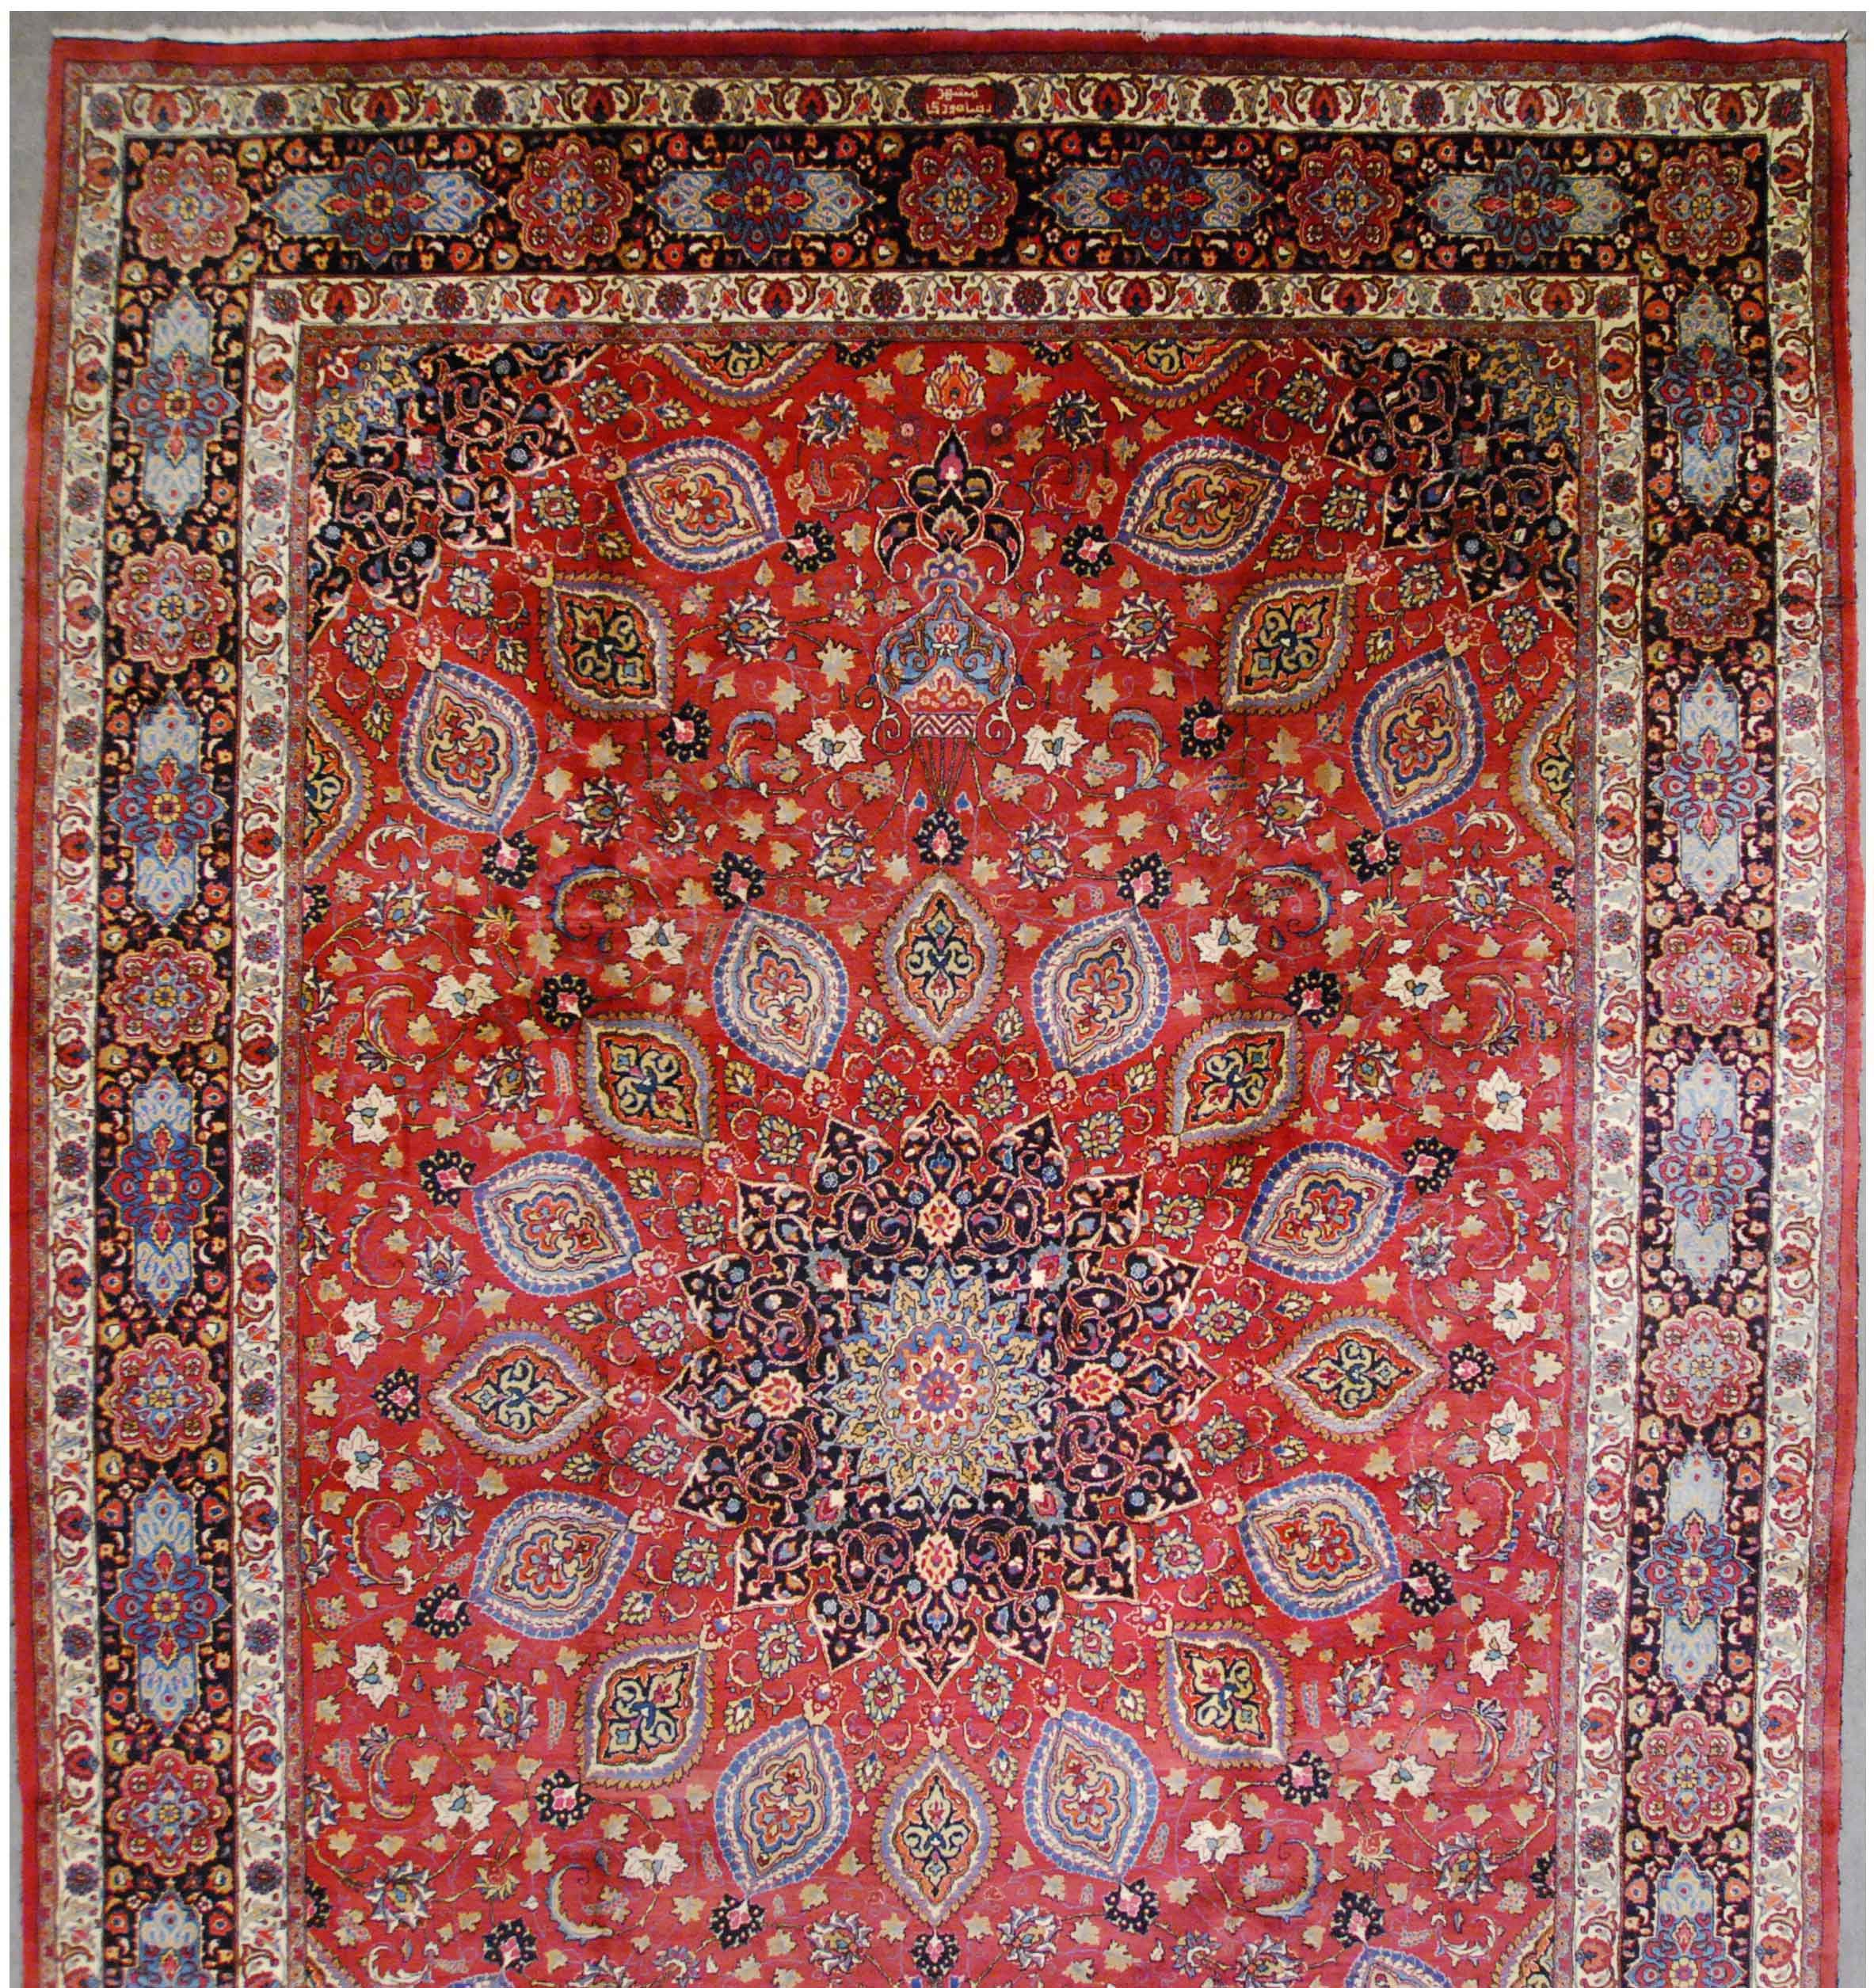 ANTIQUE PERSIAN MESHAD